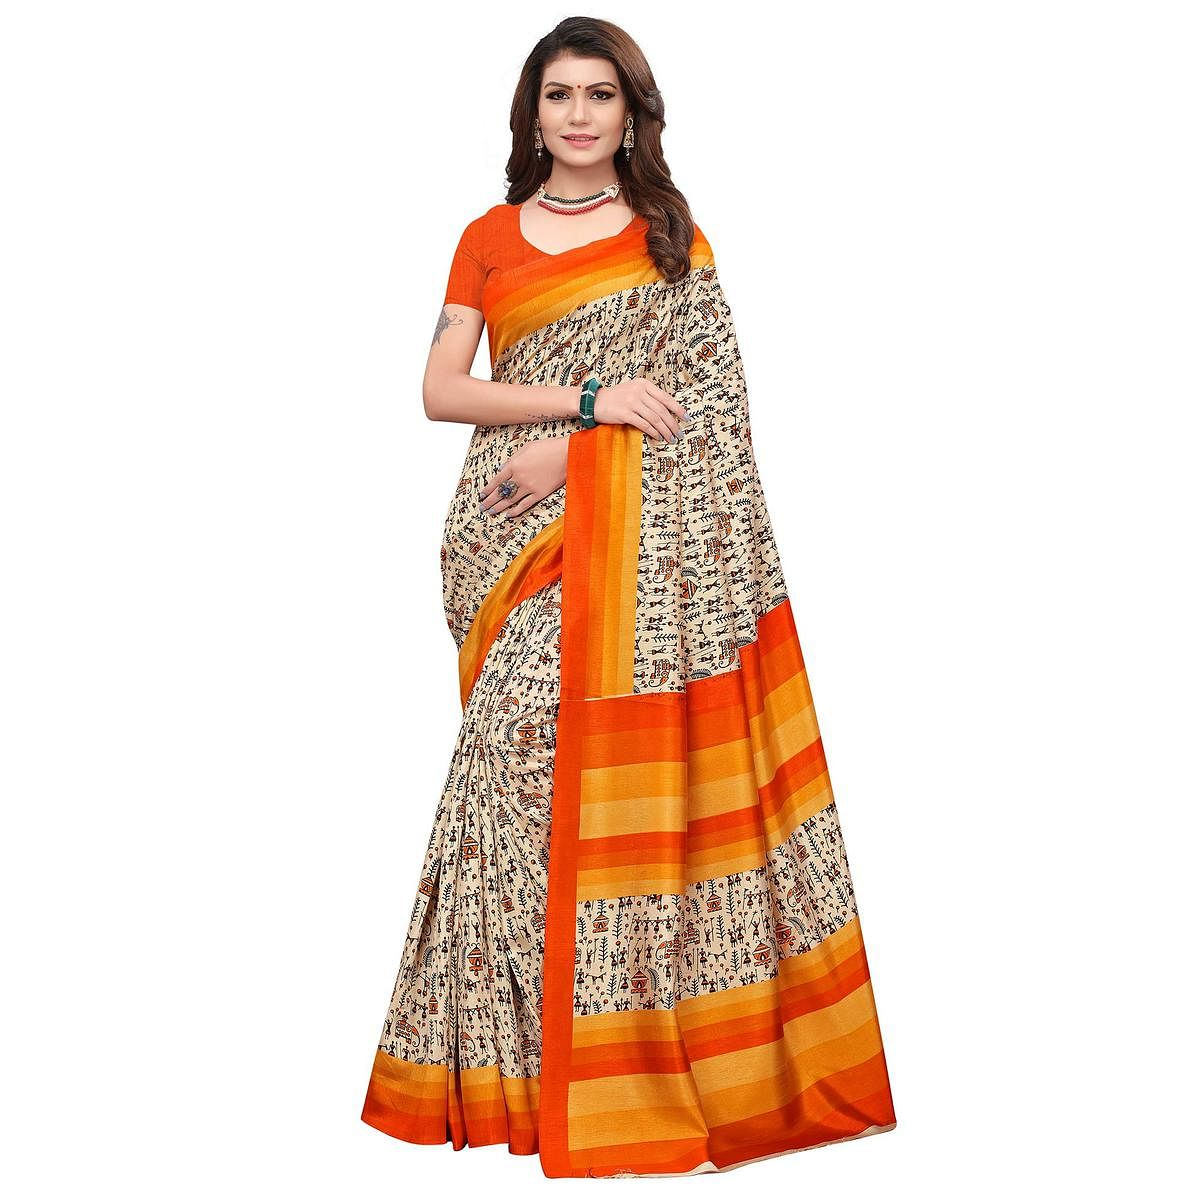 Flattering Off White - Orange Colored Casual Wear Printed Art Silk Saree